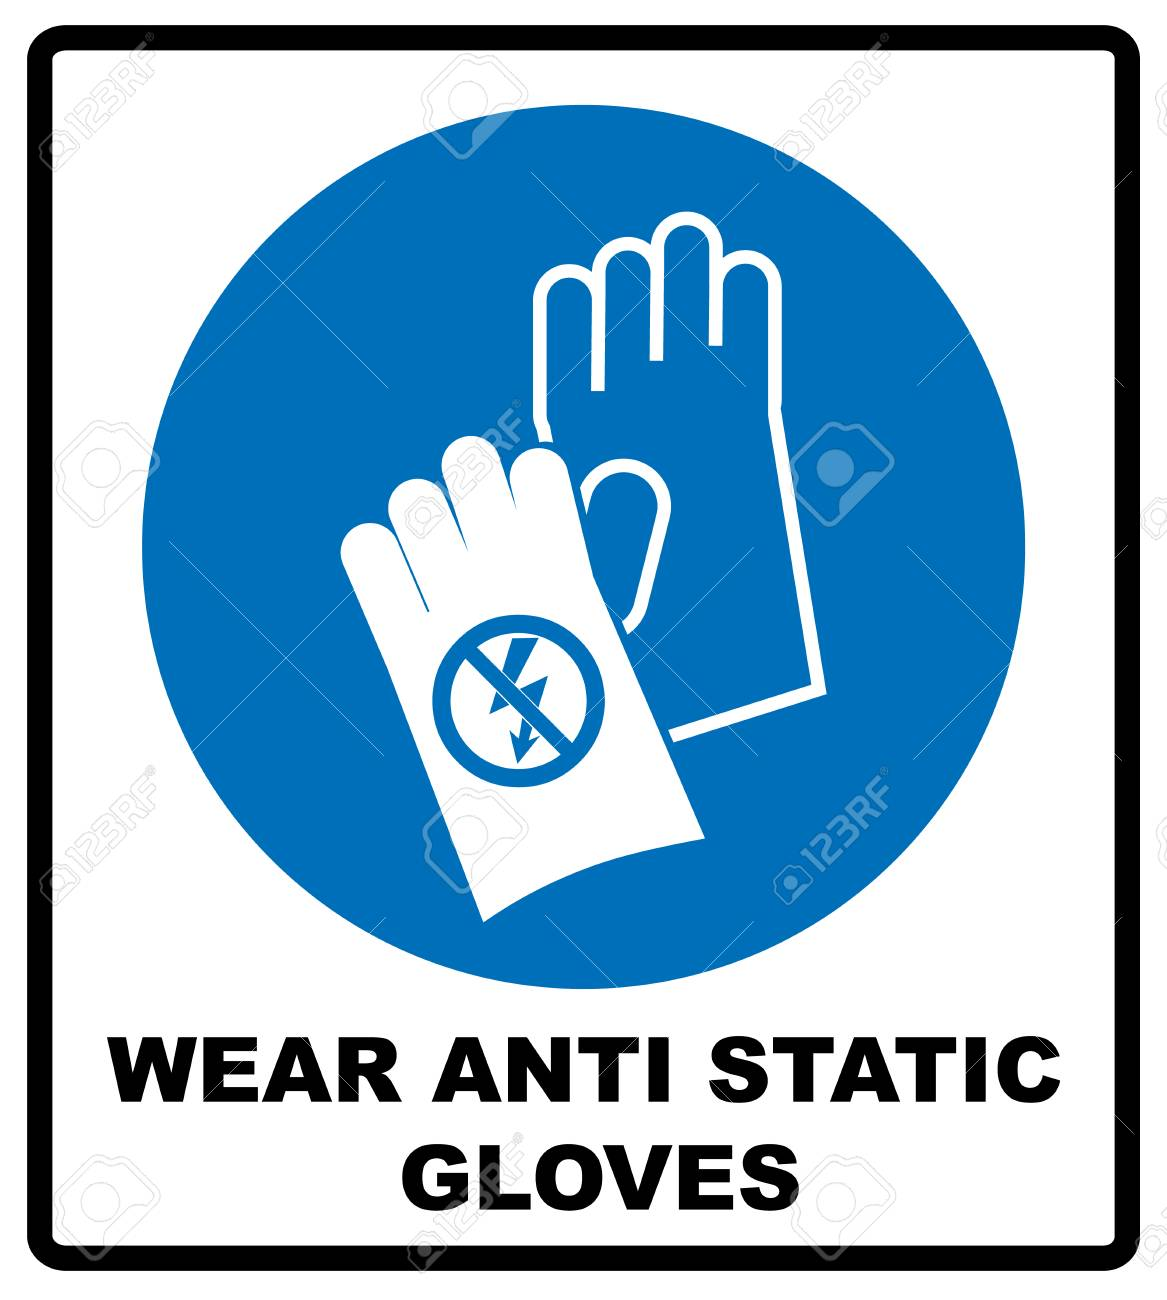 Wear Anti Static Gloves Symbol In Blue Circle Safety Sign Hand